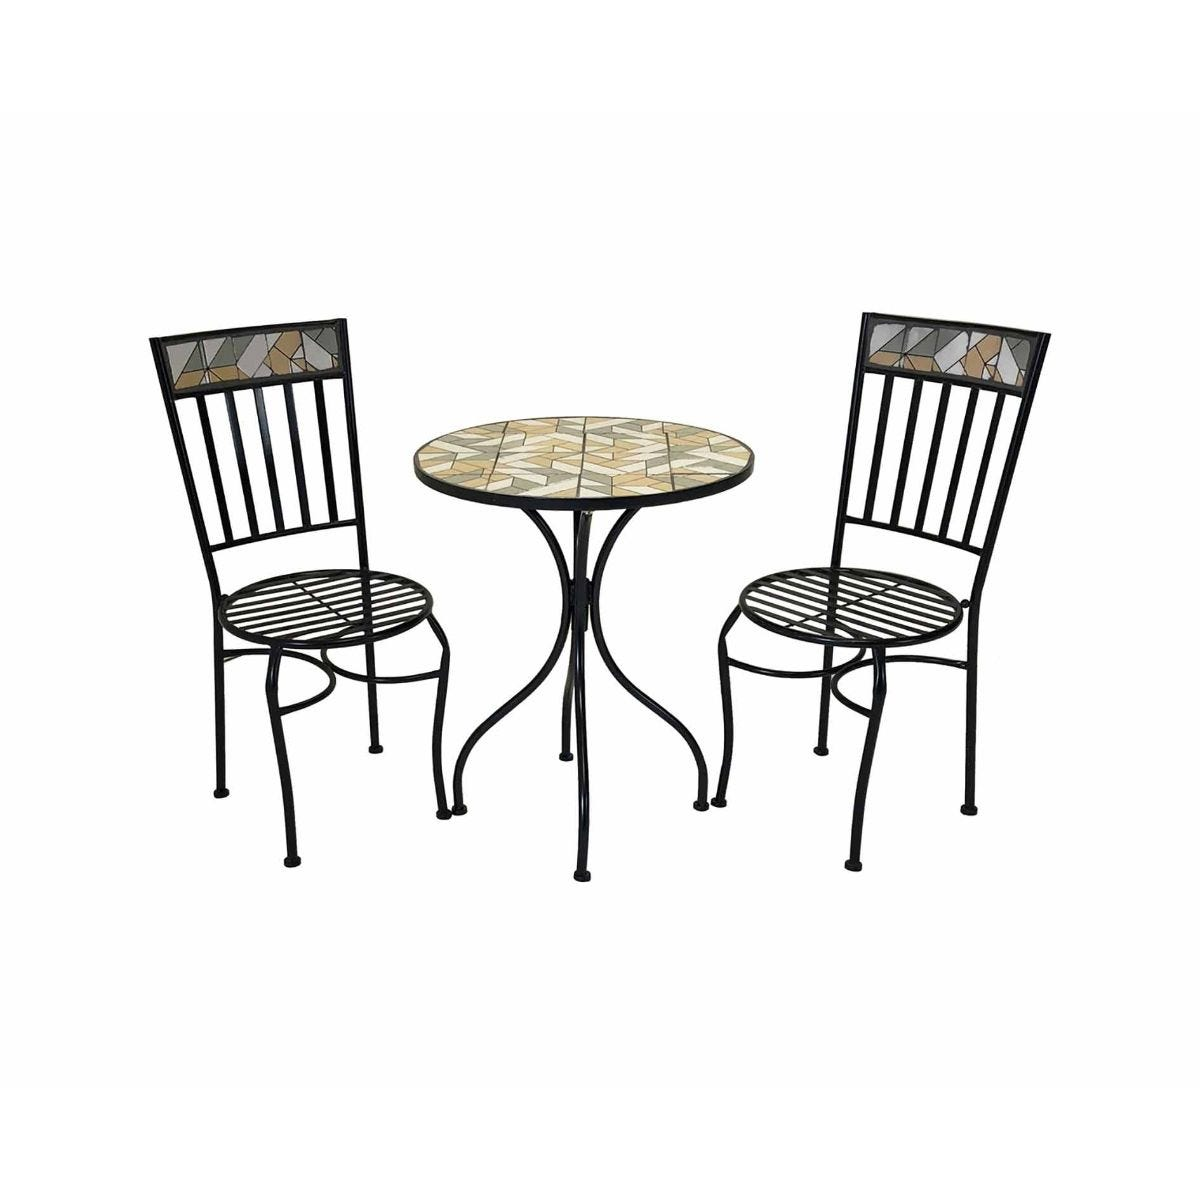 Charles Bentley Geometric Mosaic 3 Piece Garden Bistro Set, Multi